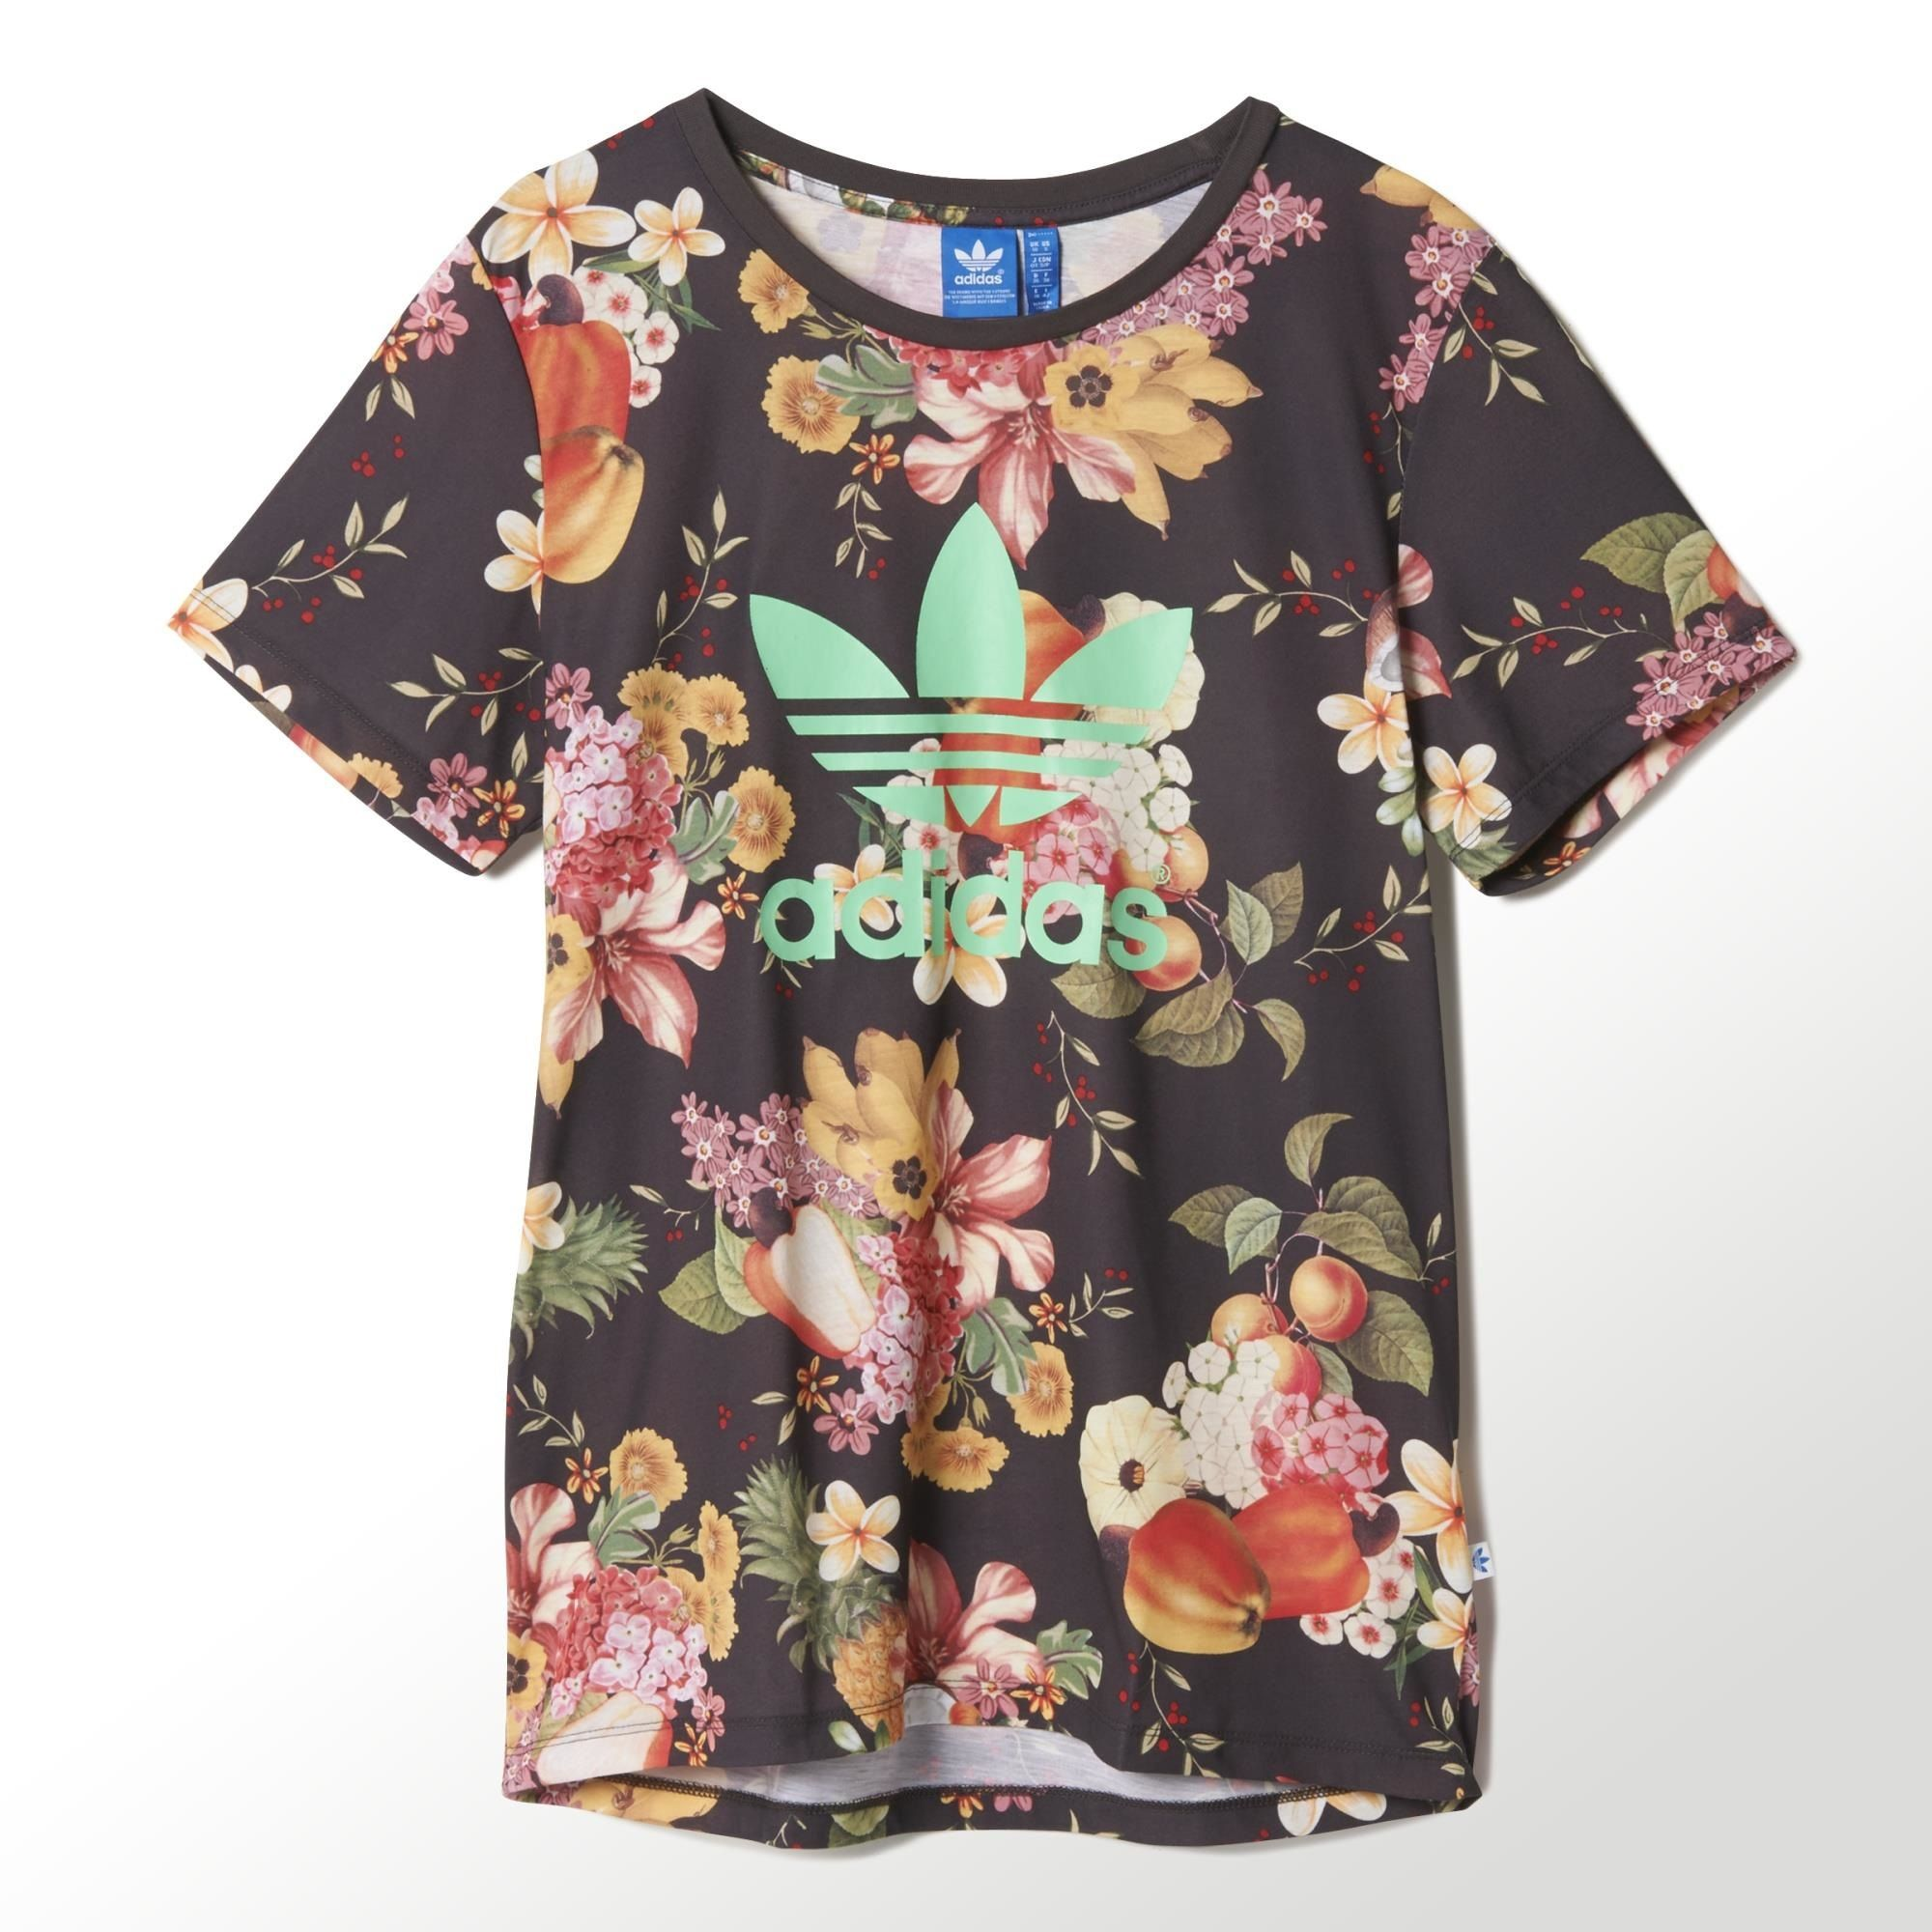 Design t shirt adidas - A Collaboration With Brazilian Design Company Farm Brings The Warmth And Colour Of Brazilian Culture To